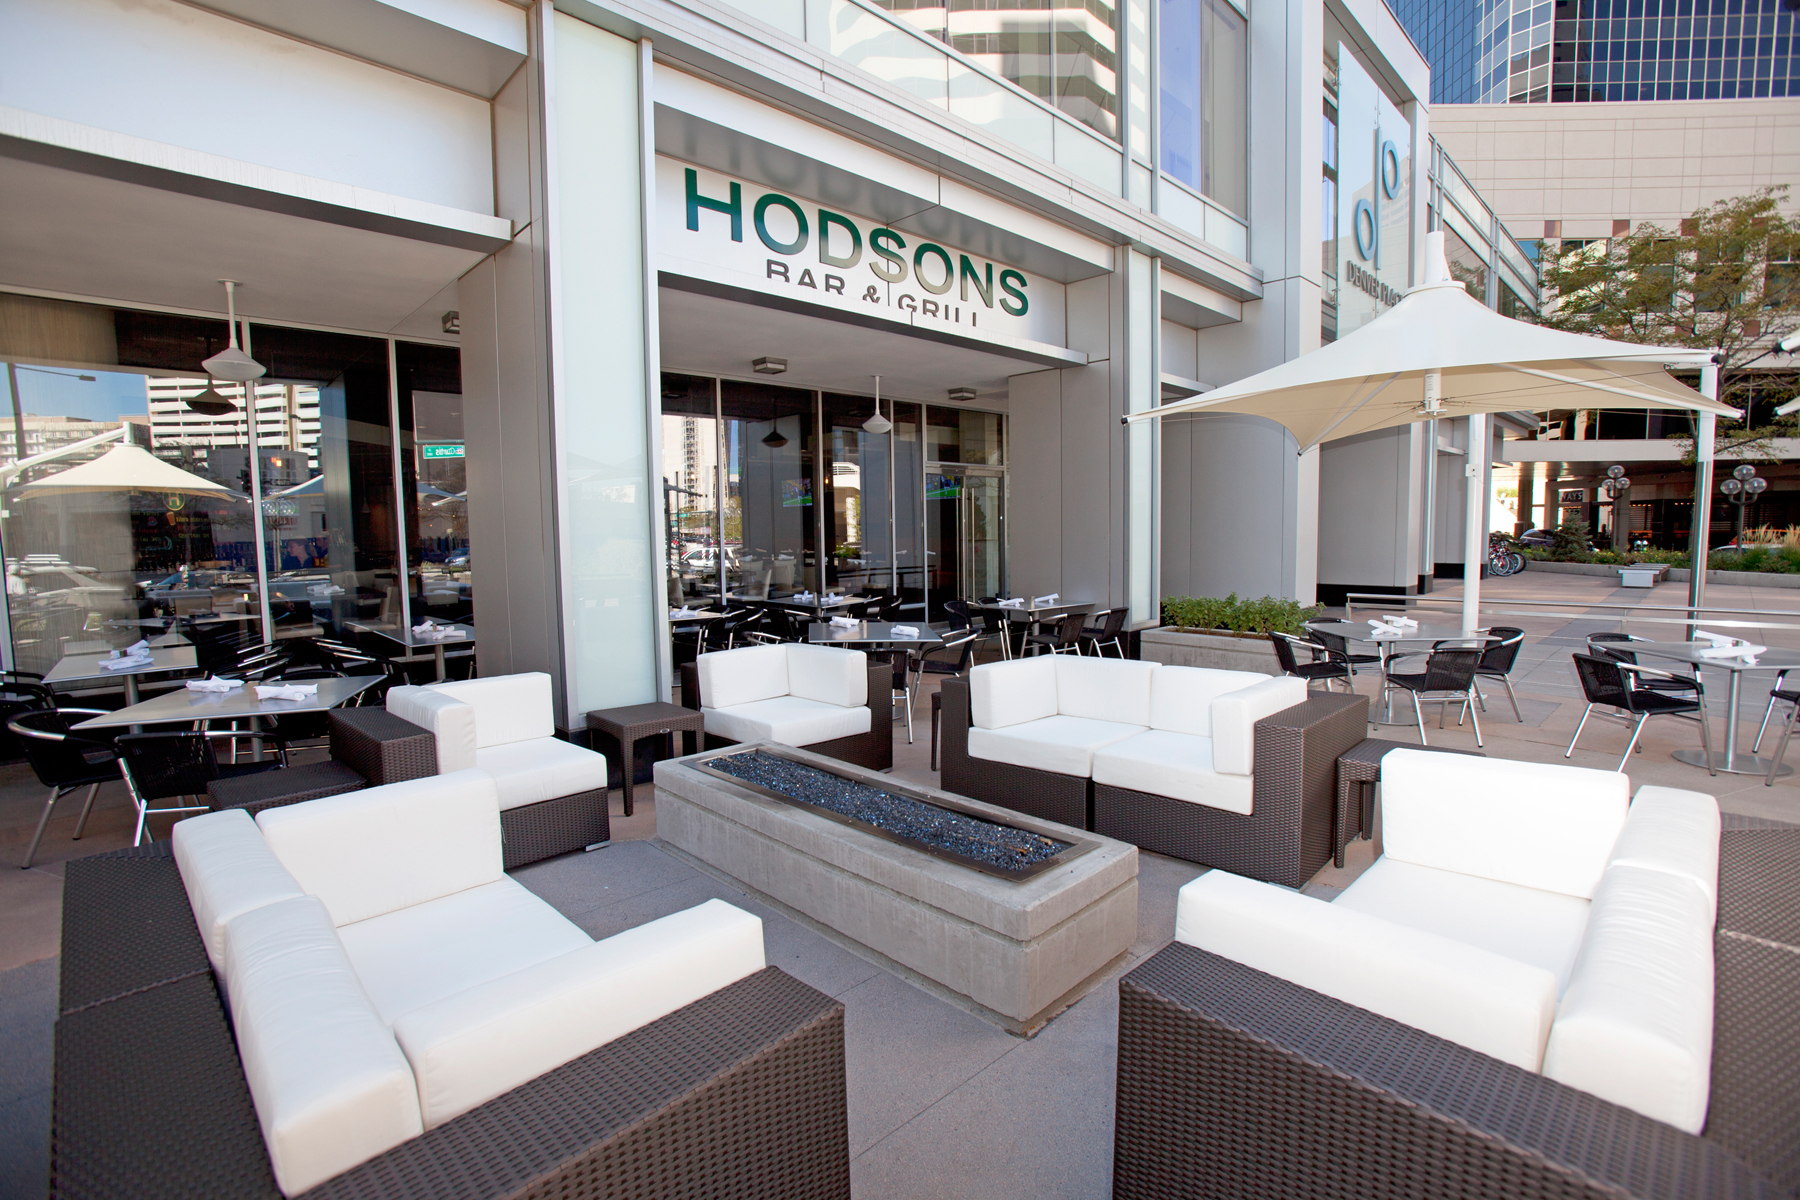 Hodson's Restaurant Design and Construction Colorado Denver